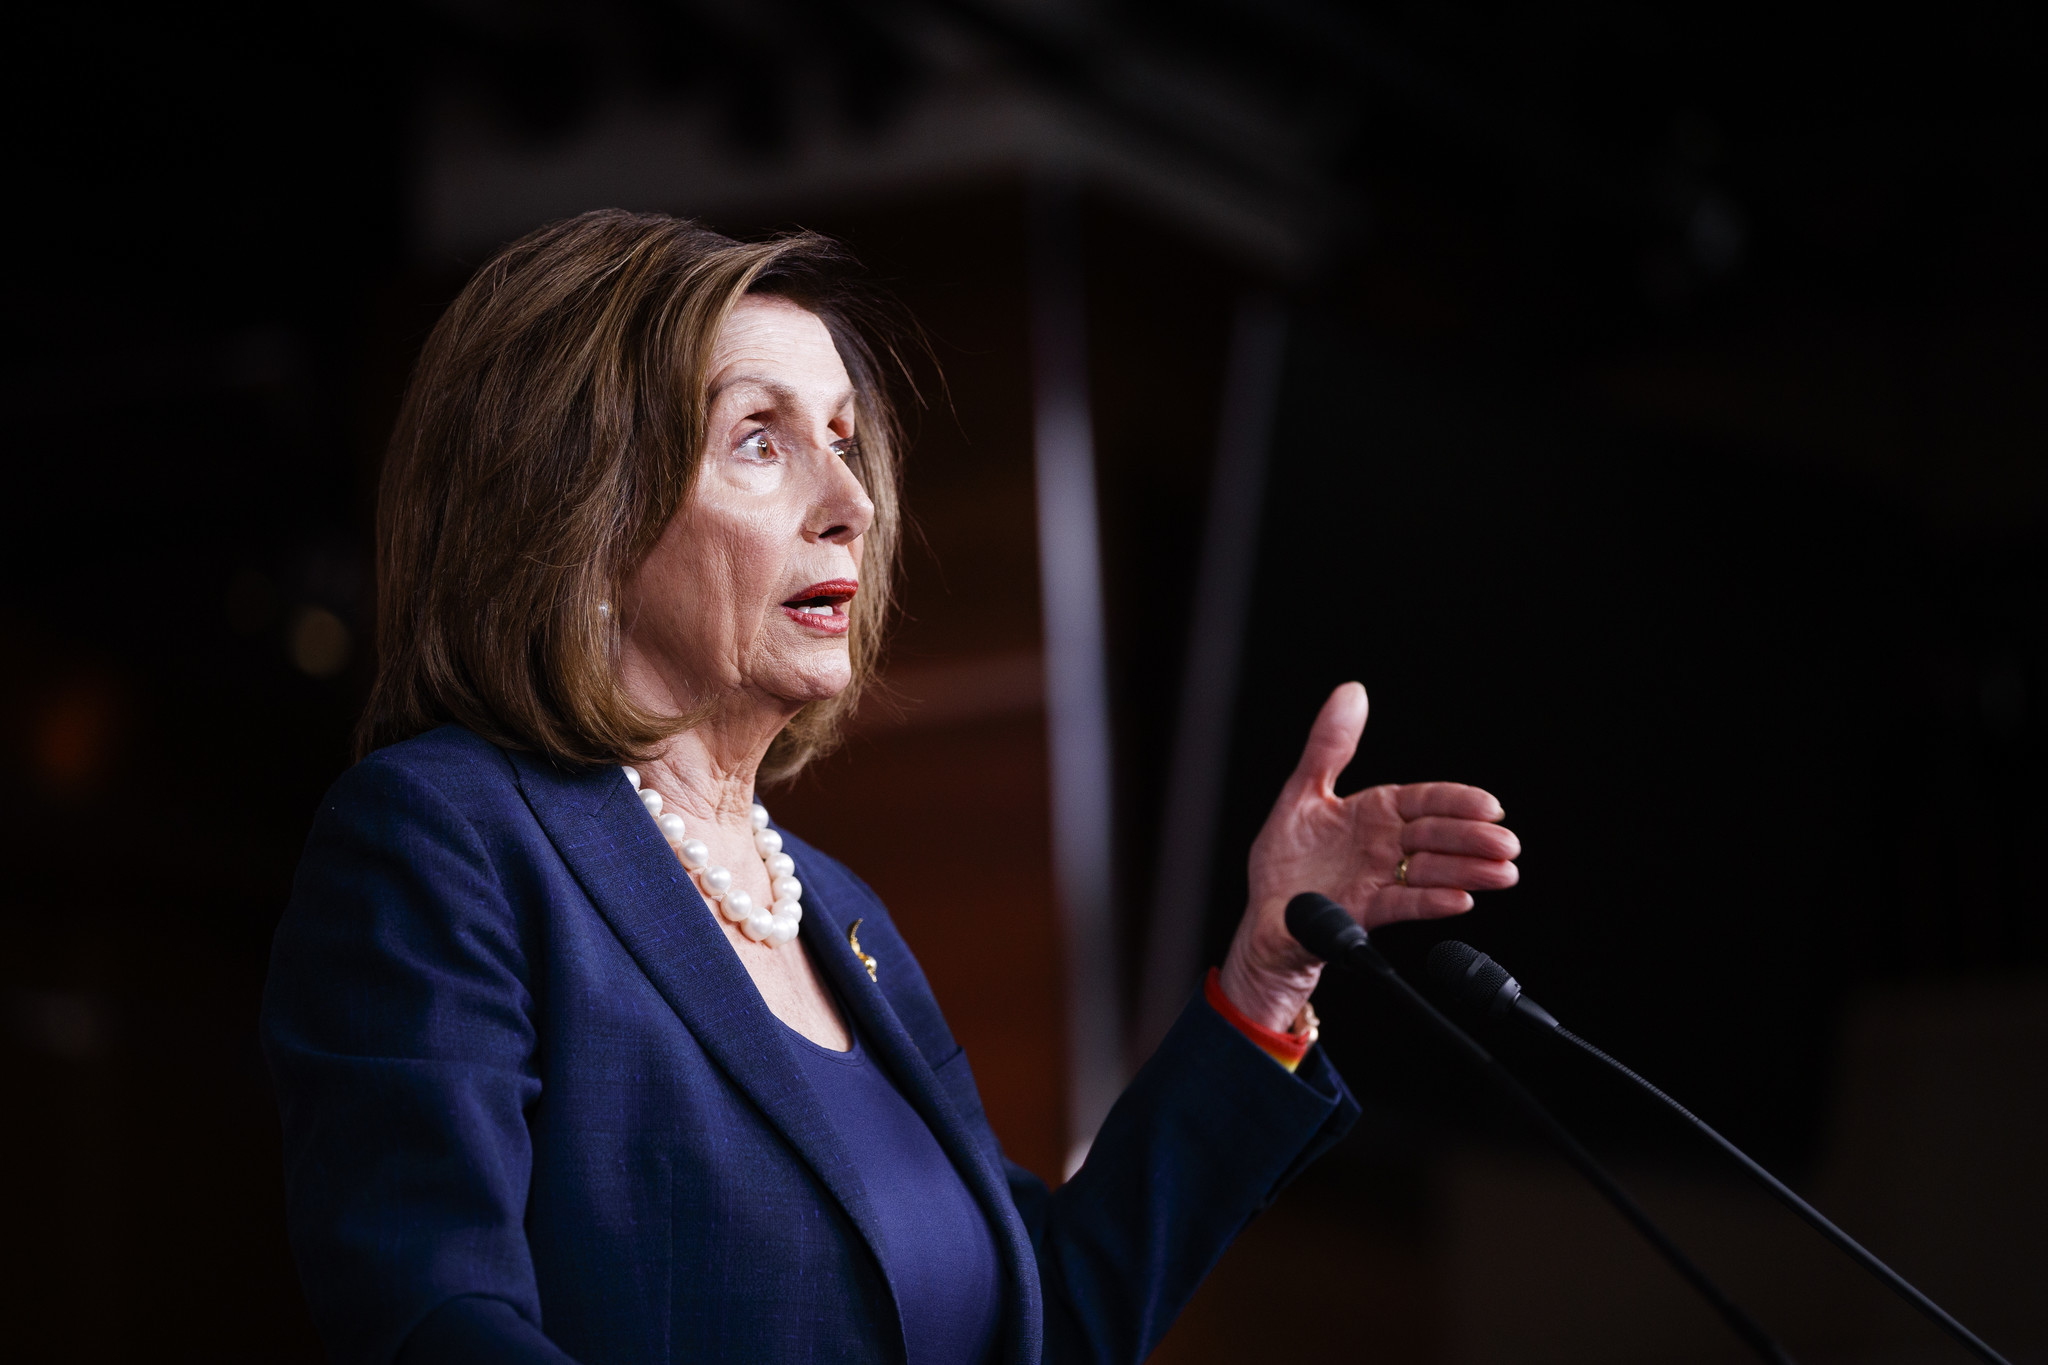 Pelosi's strategy worked brilliantly: How her delay to send over the articles of impeachment paid off